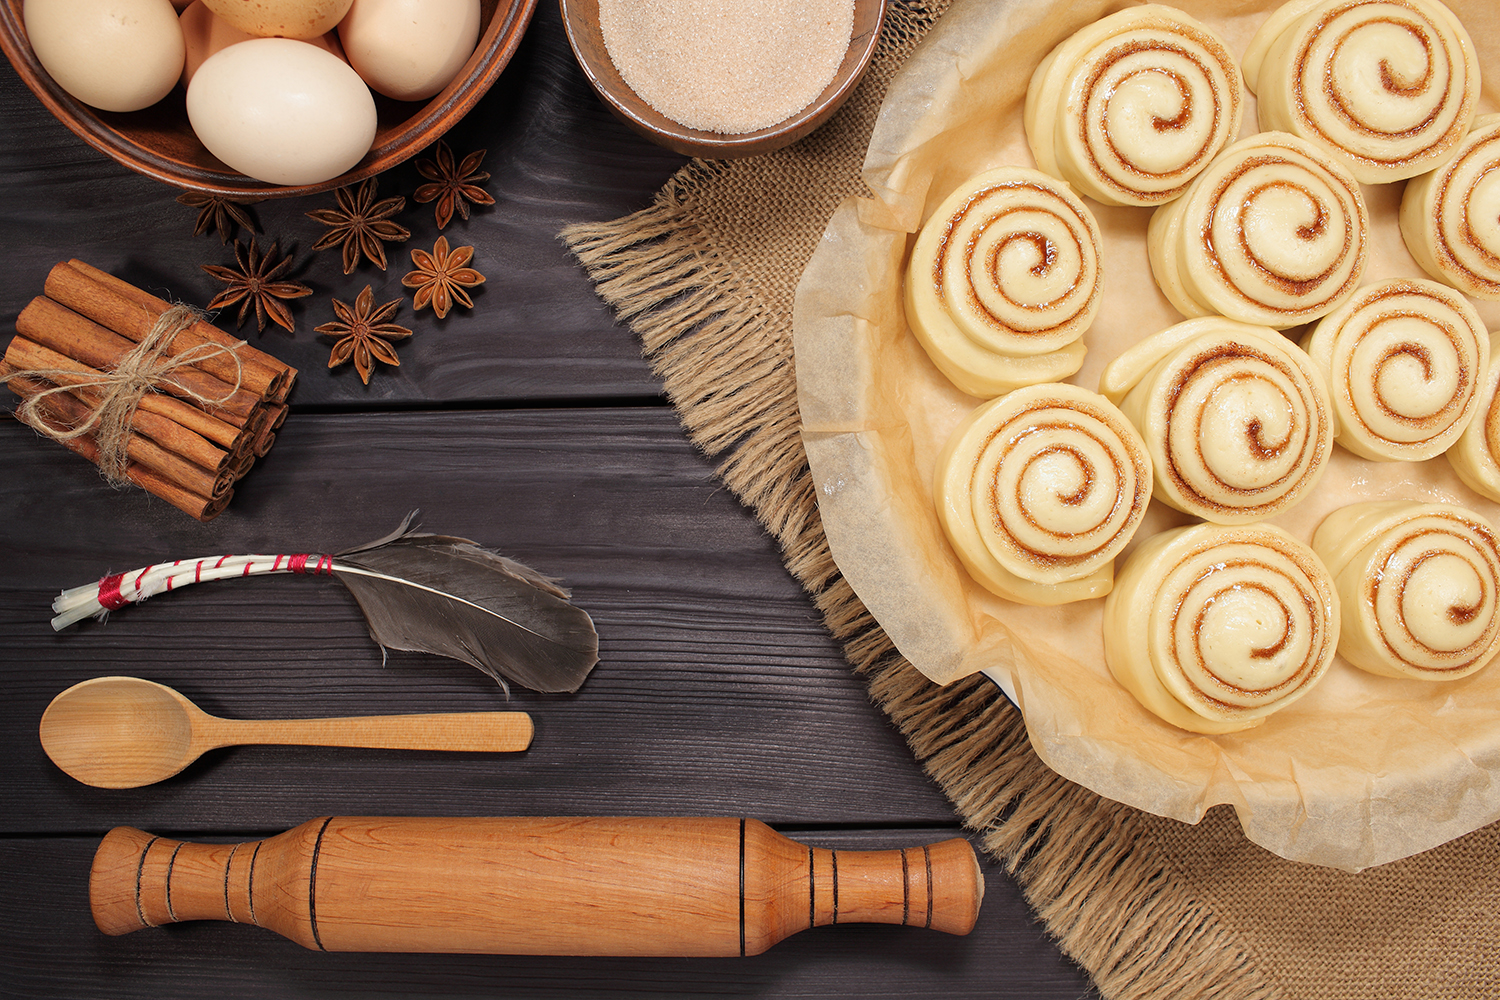 Set of 11 photos - raw buns: cinnamon rolls prepared for baking on a background of rustic table example image 9